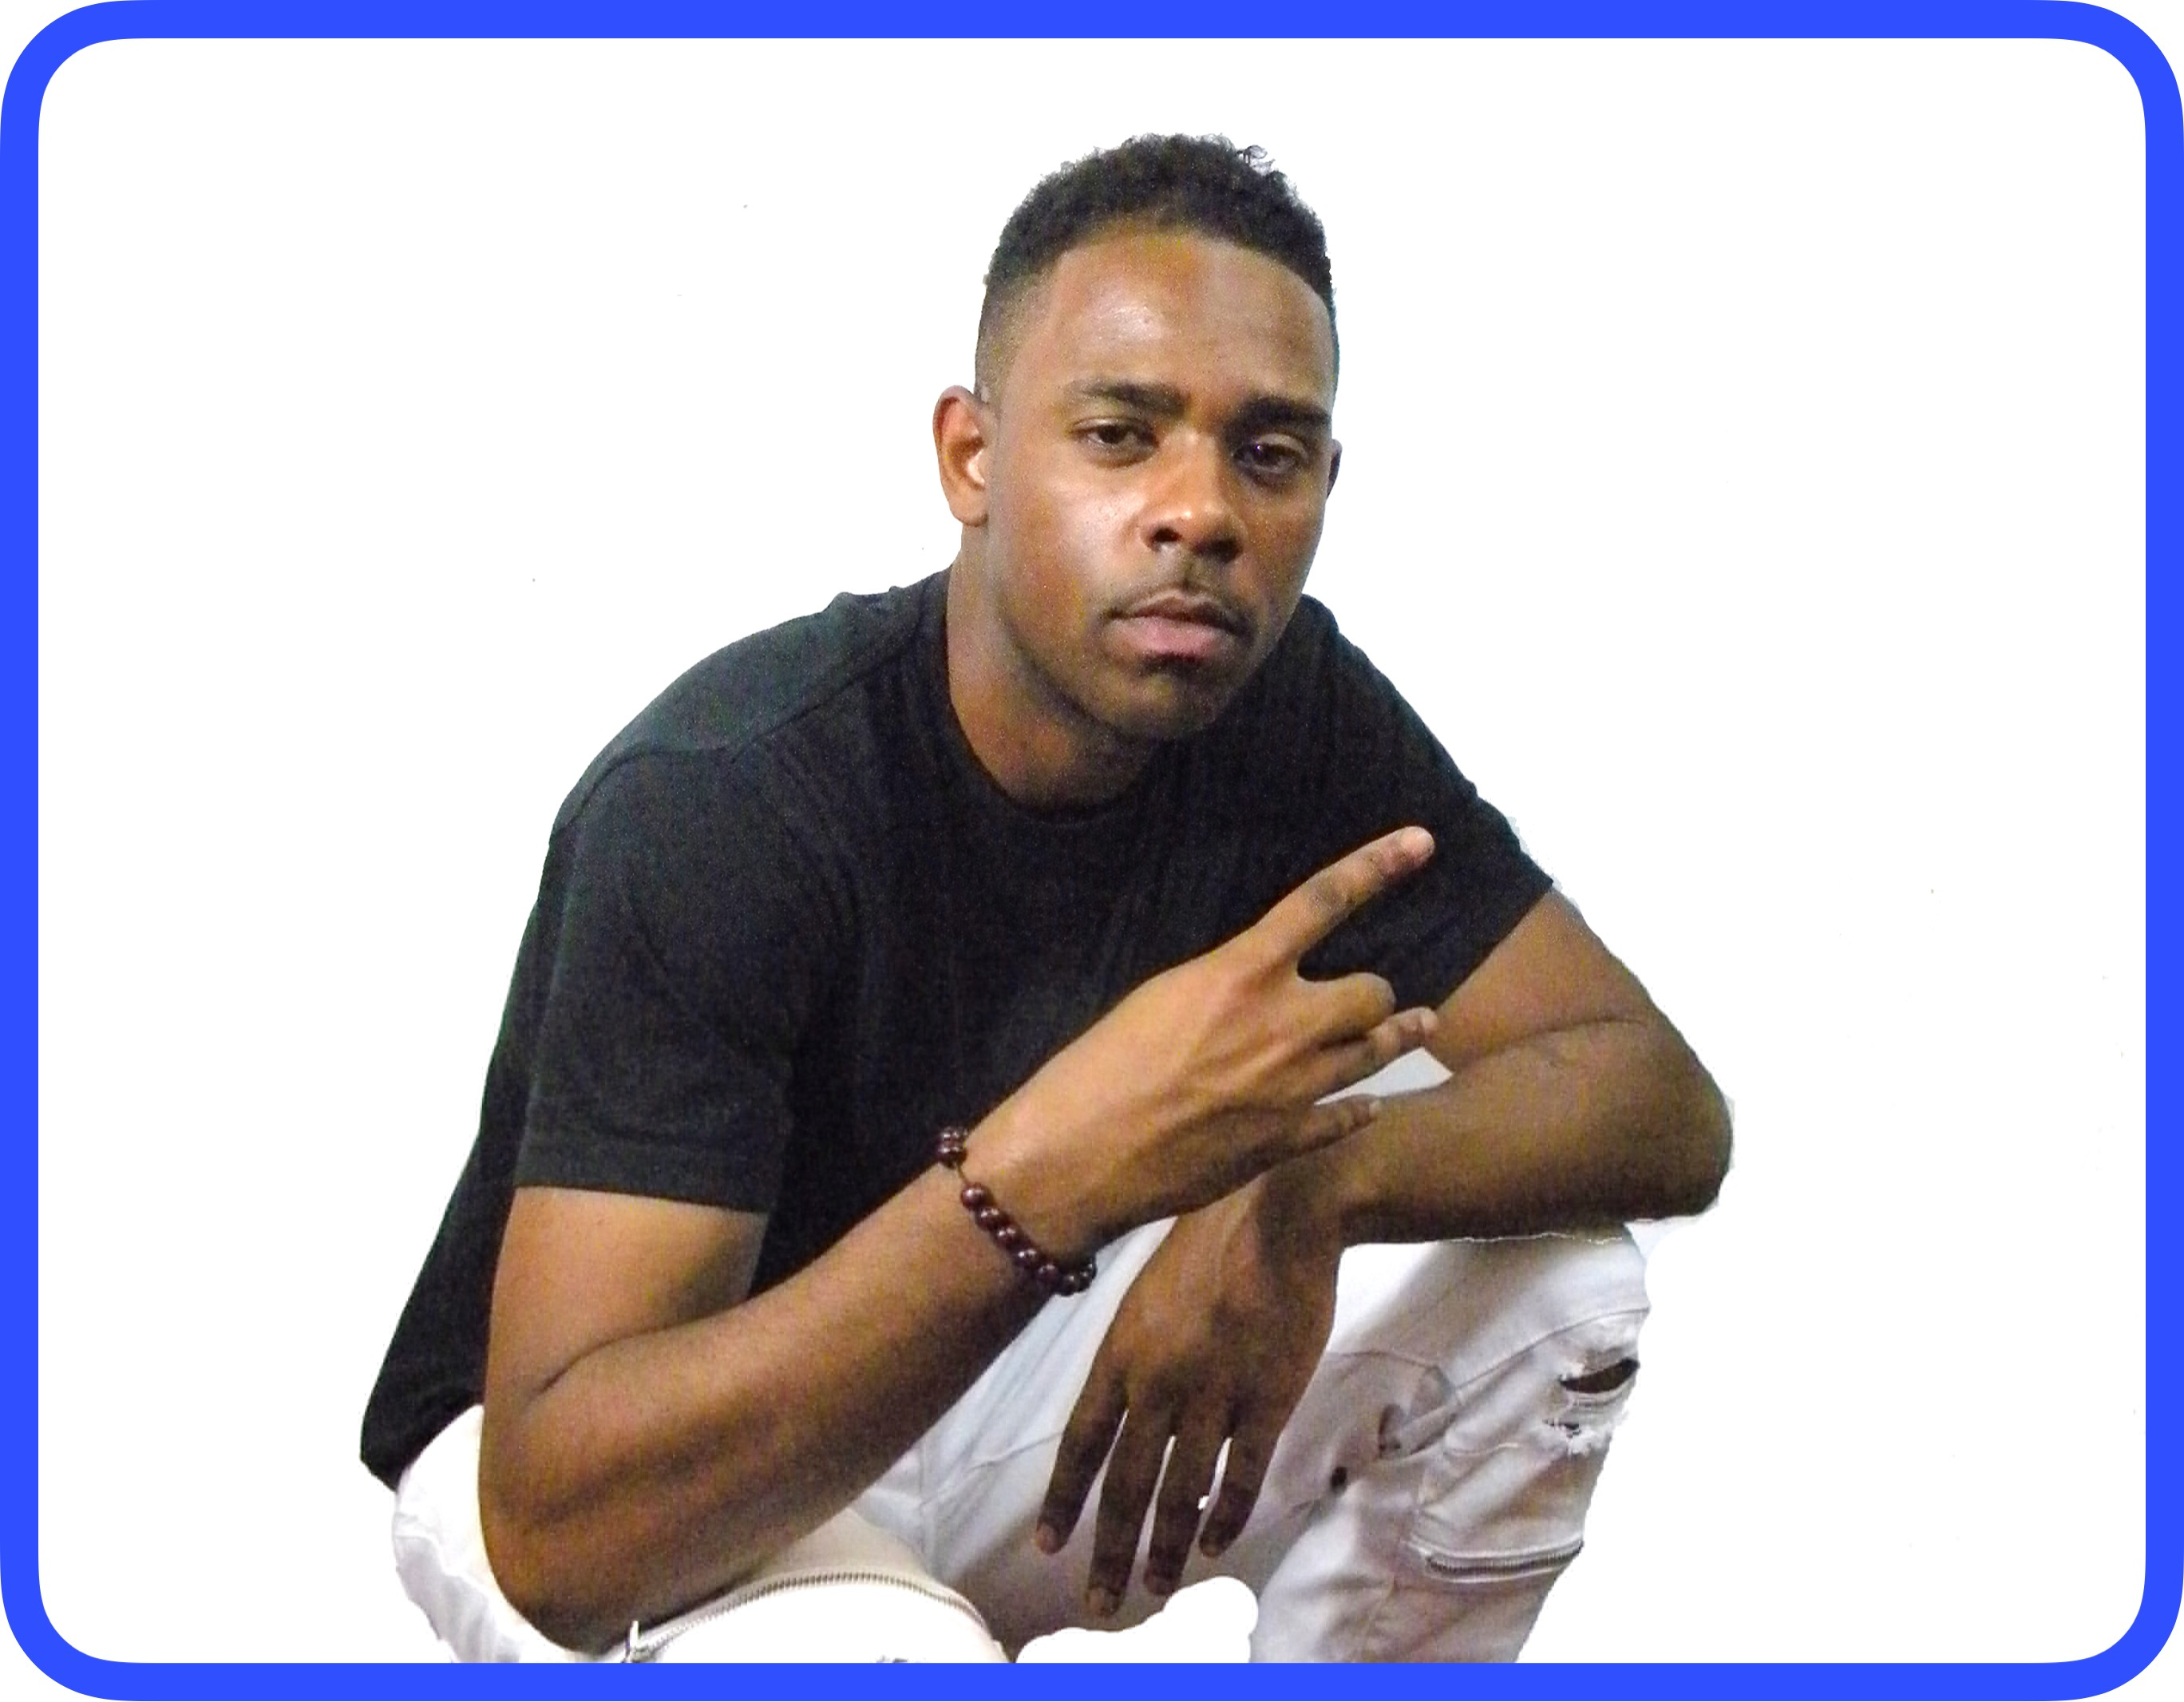 G Polynice Makes Big Moves With New Single